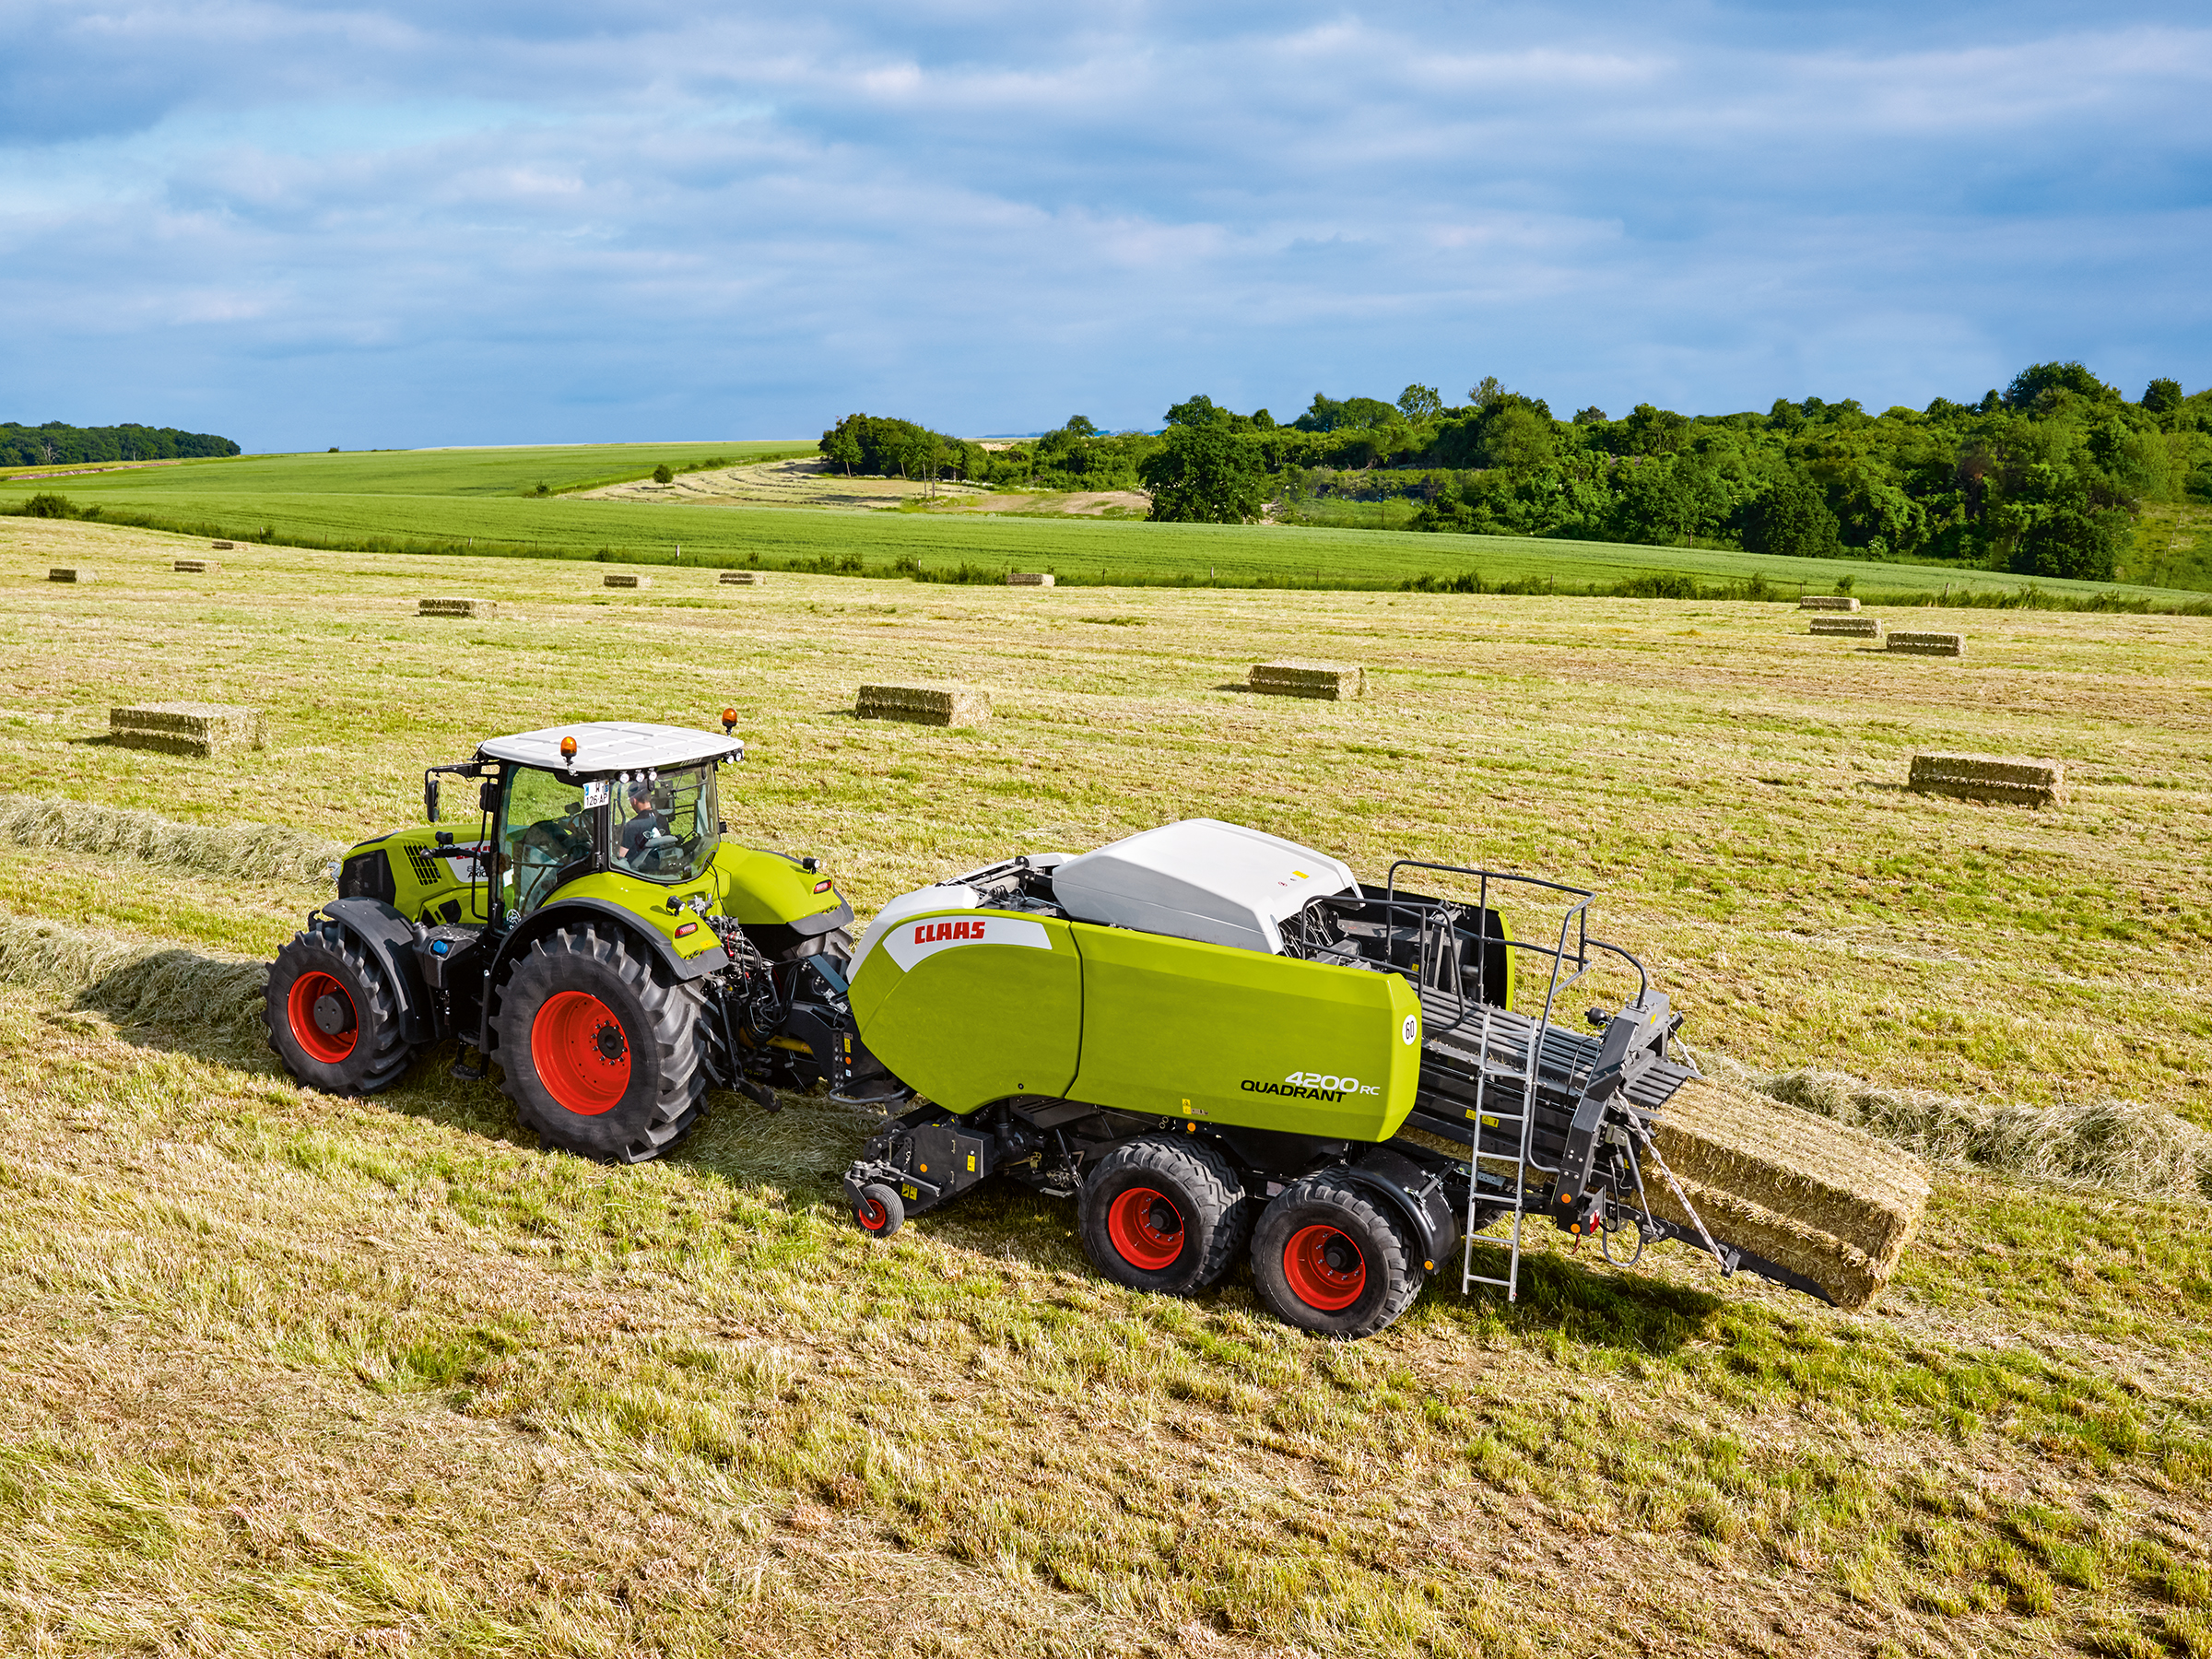 Pics Claas Unveils New Additions To Its Baler Range